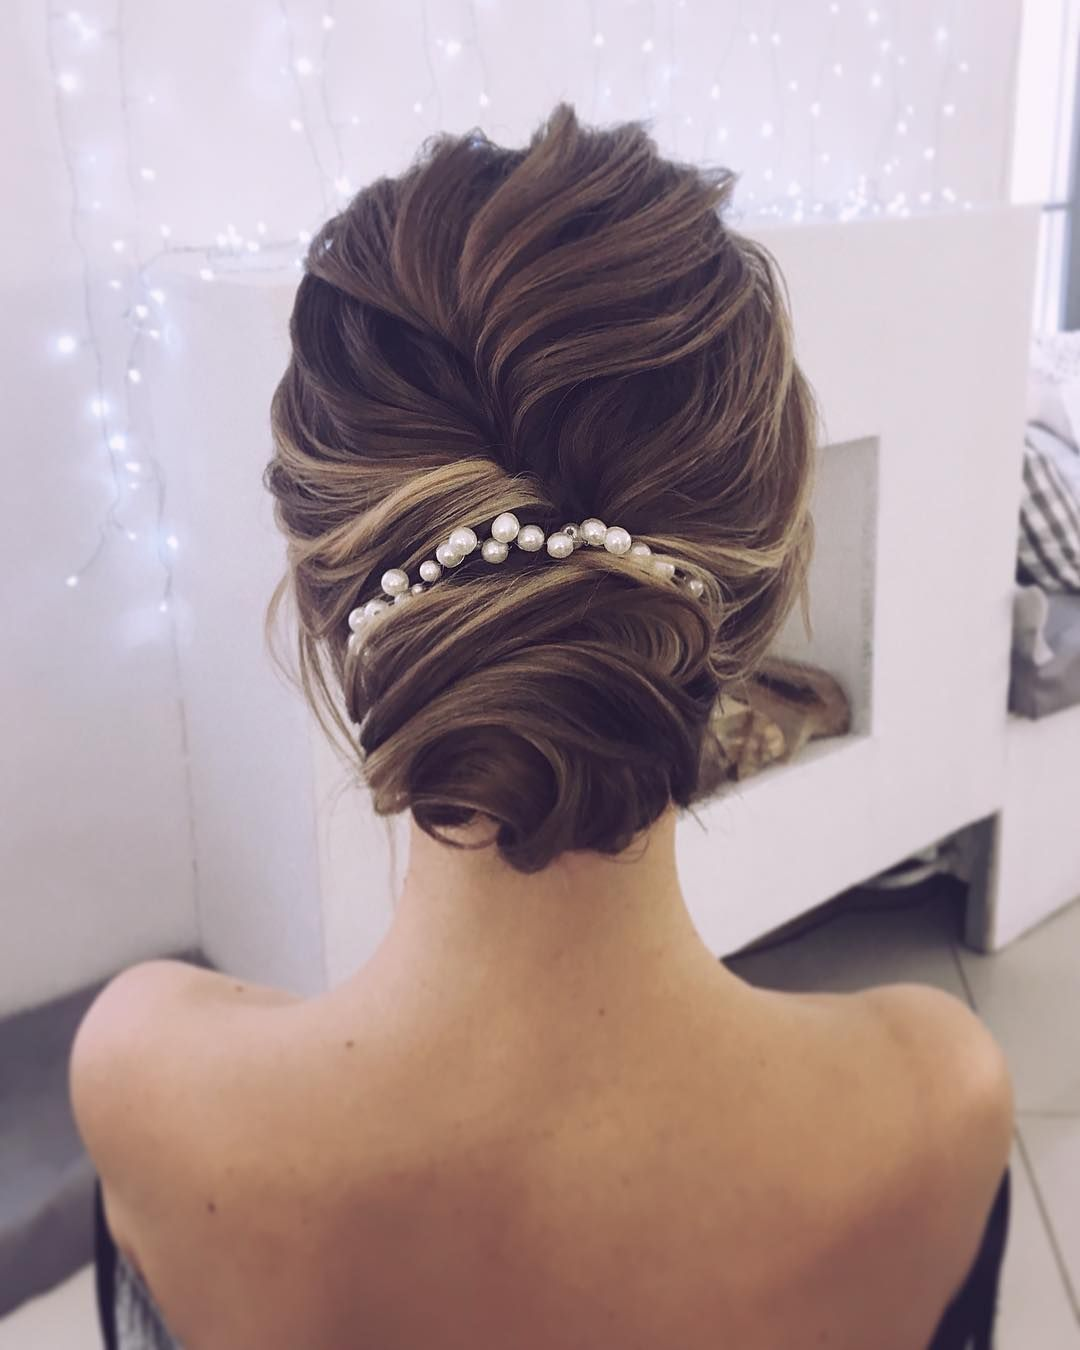 jaw dropping wedding updo hairstyle inspiration   hair